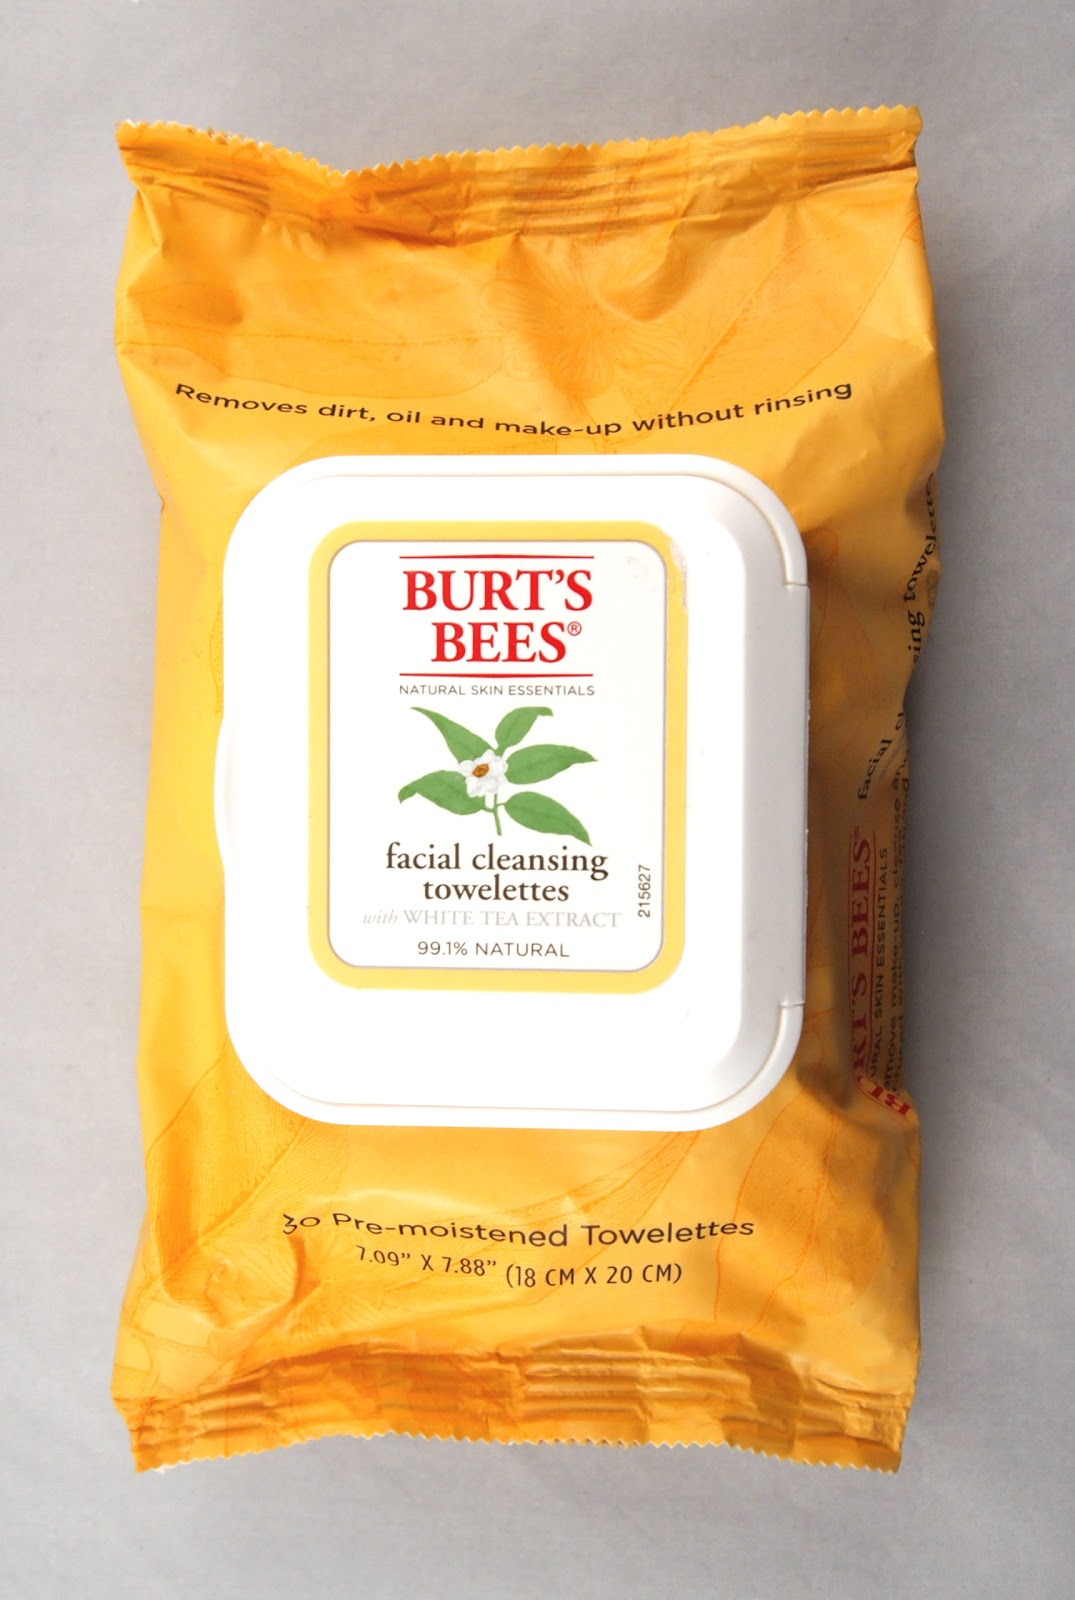 Facial Cleansing Towelettes - Peach & Willowbark Exfoliating by Burt's Bees #17